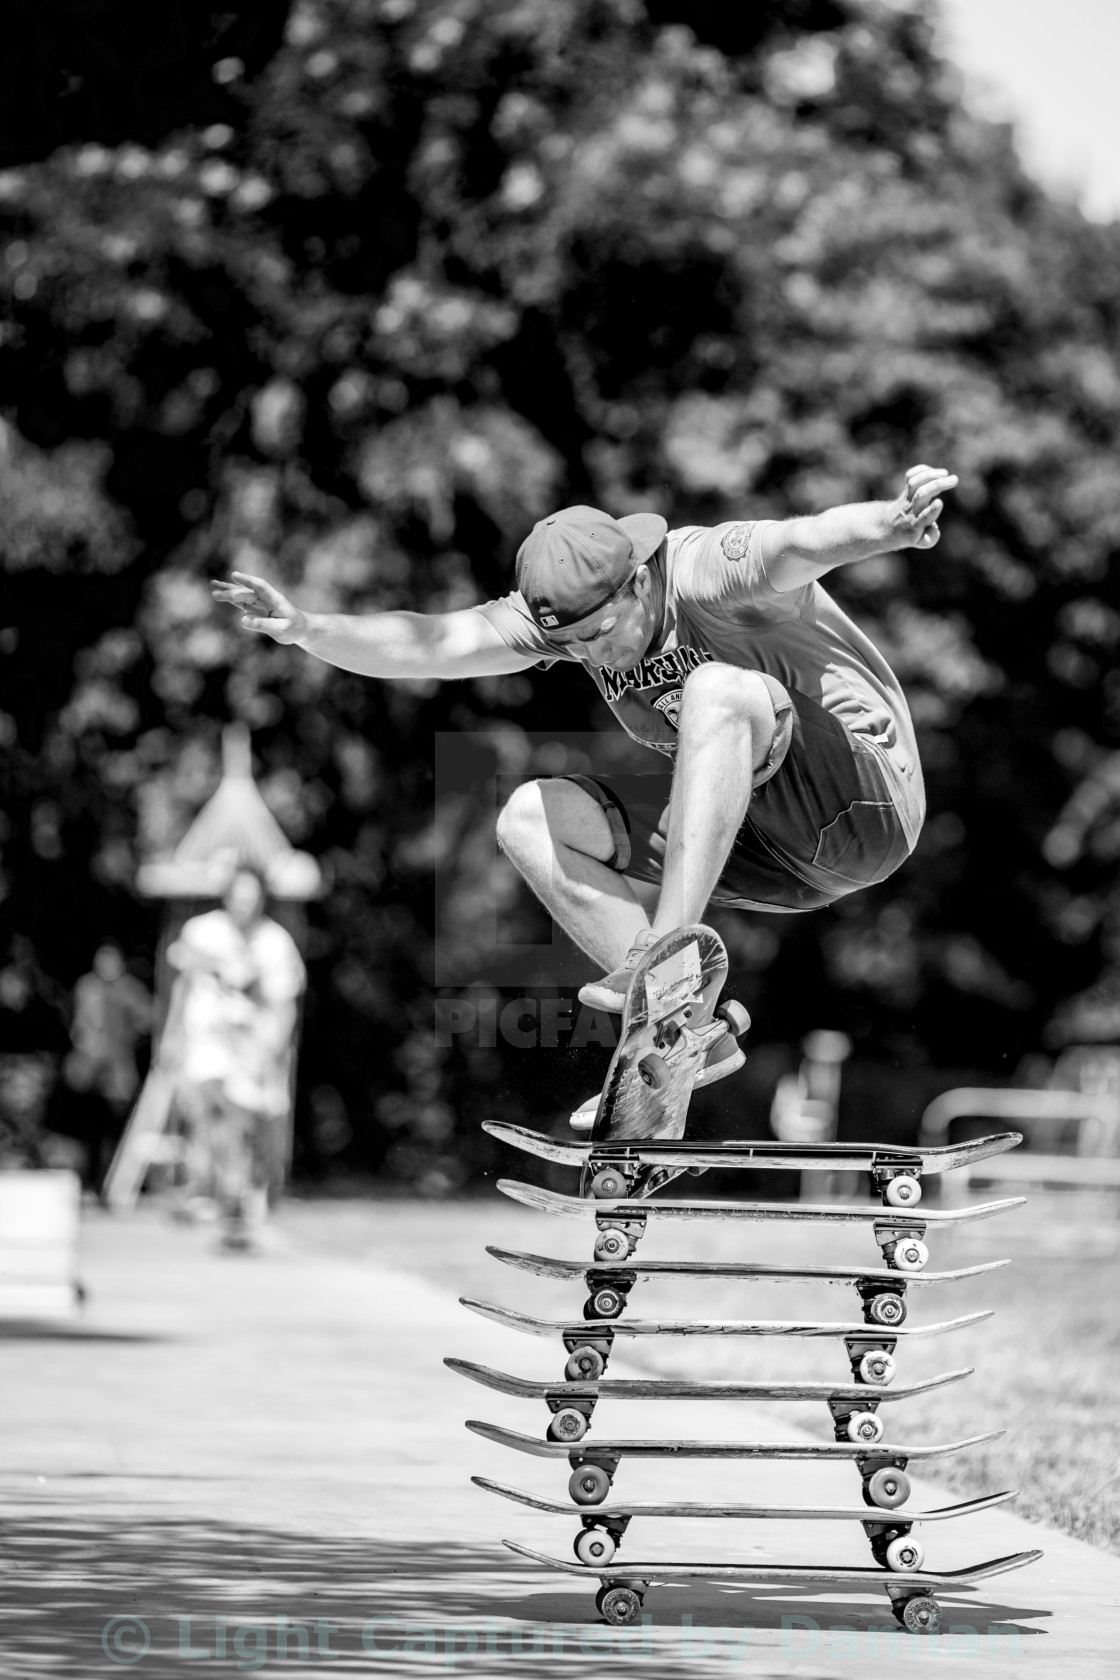 """Young man with hat jumping over stacked skate boards in a skateboard park during a sunny summer morning."" stock image"